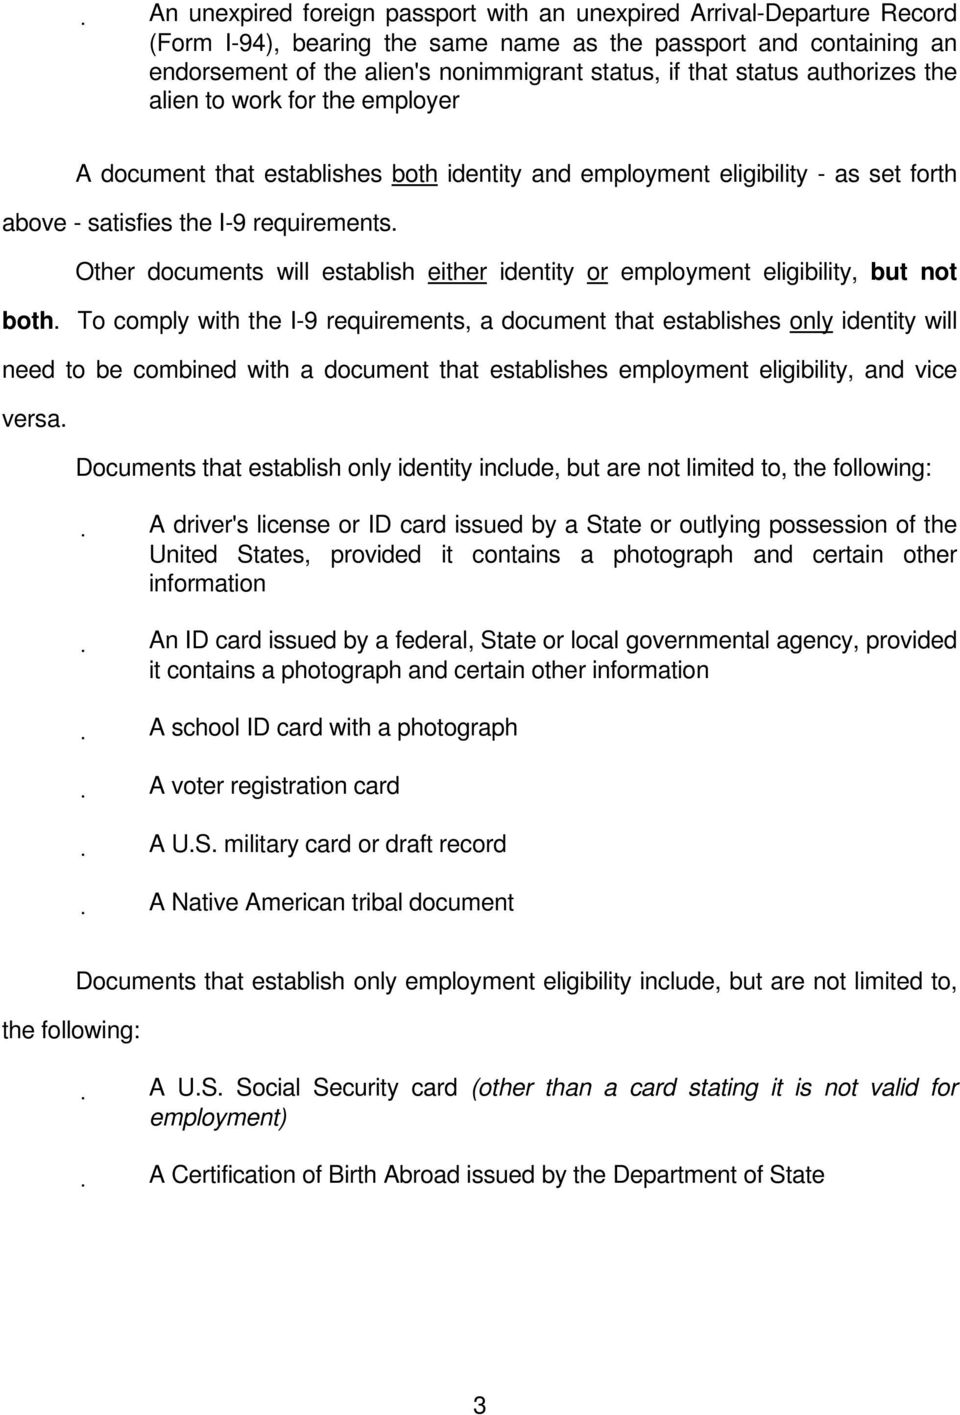 Other documents will establish either identity or employment eligibility, but not both.